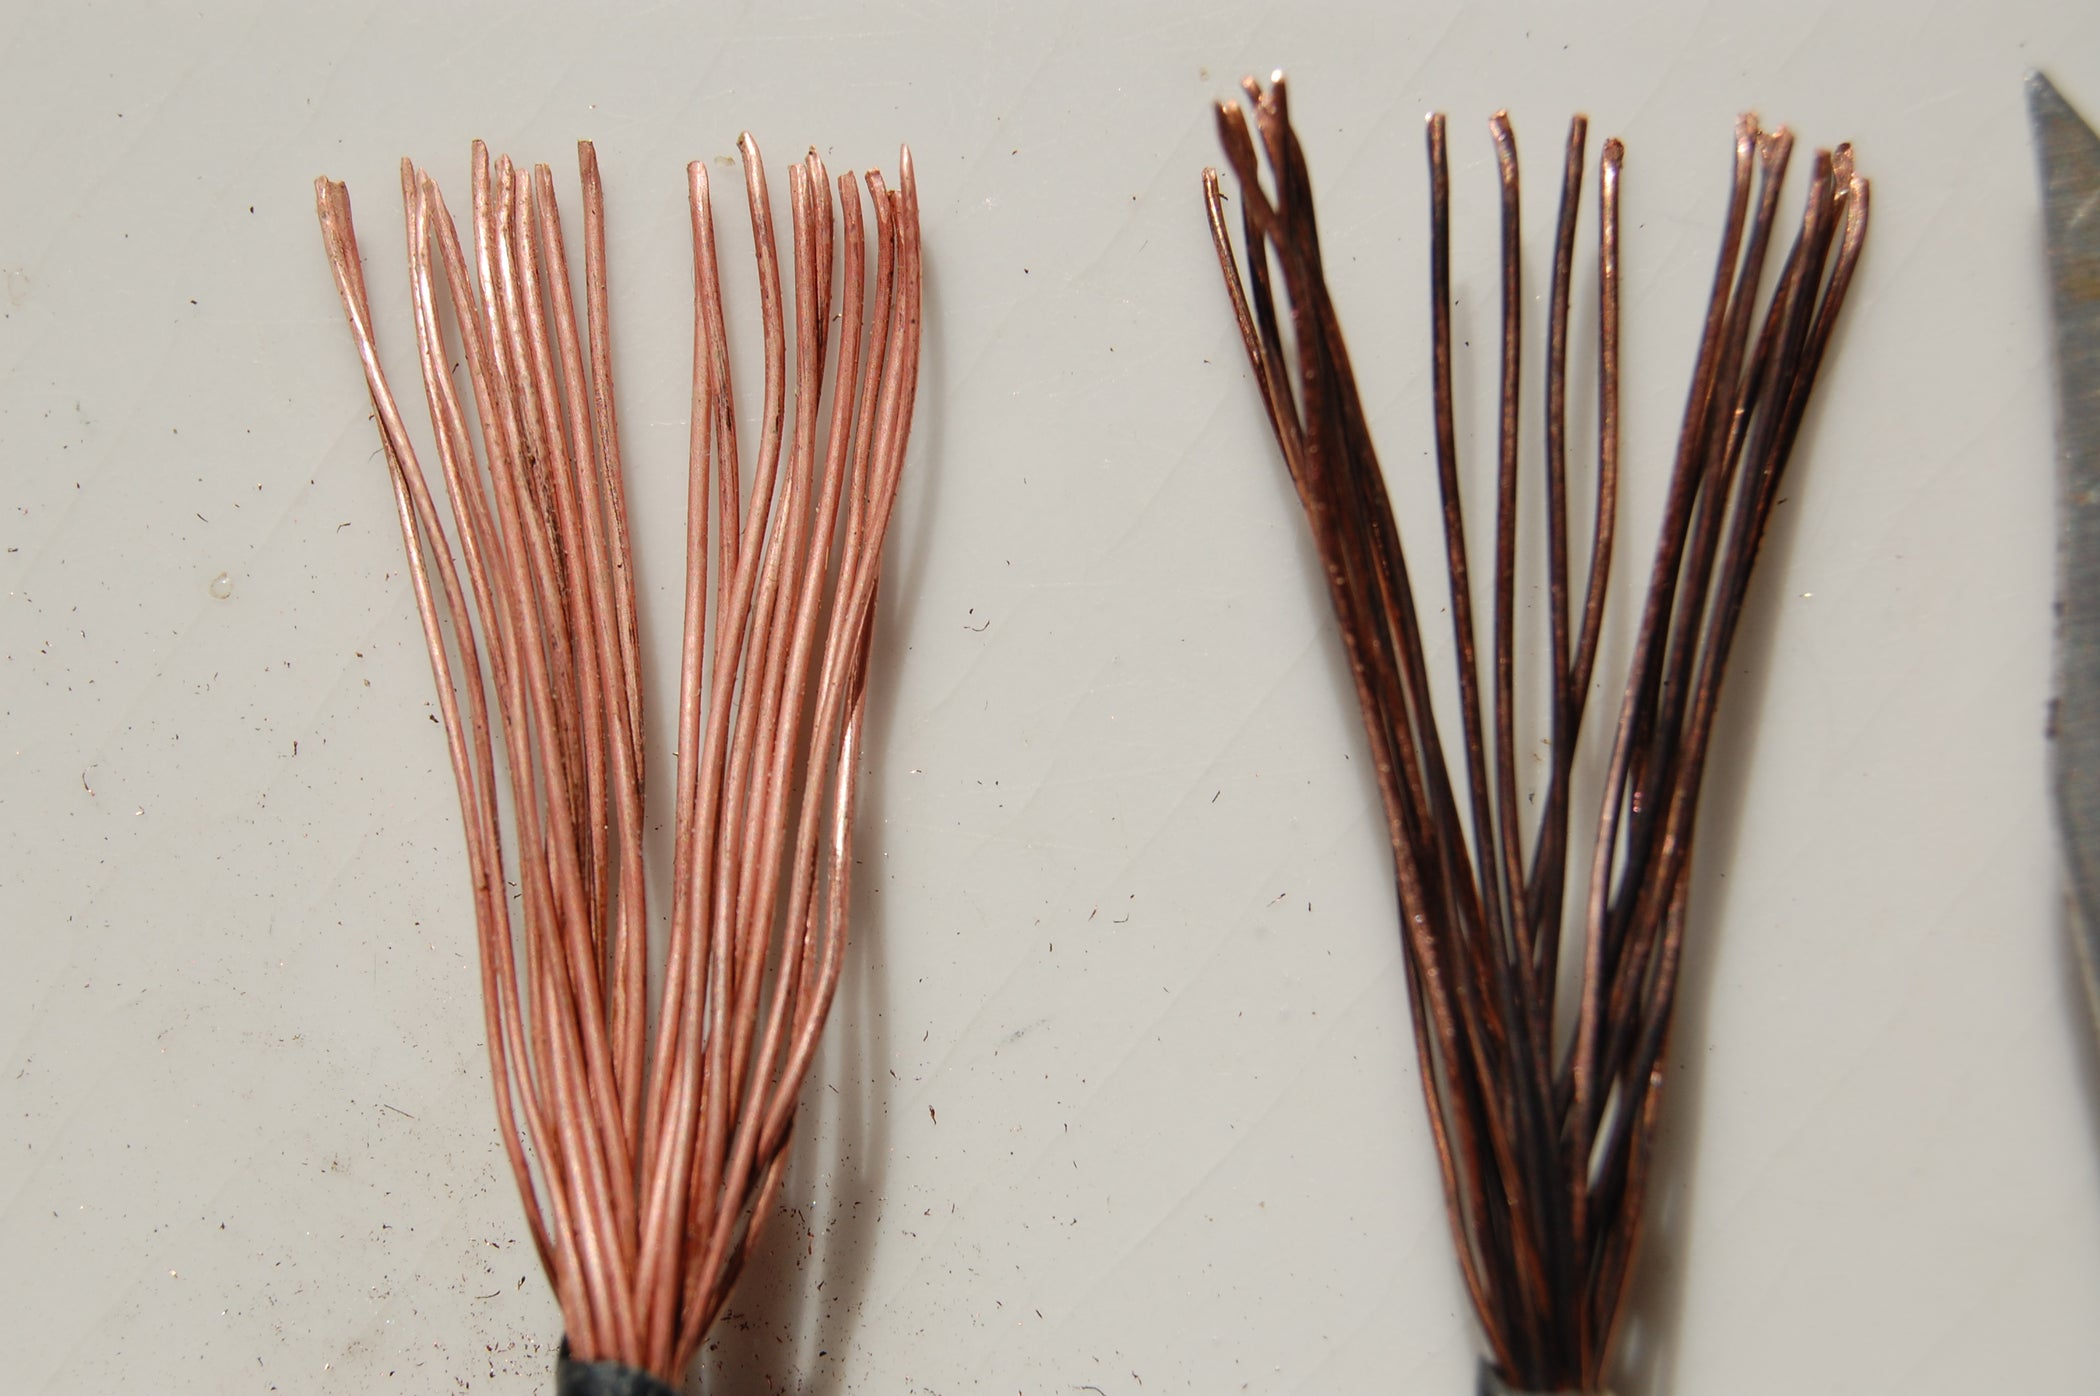 How To Perfectly Clean Wires In Minutes Aluminum Or Copper Wiring